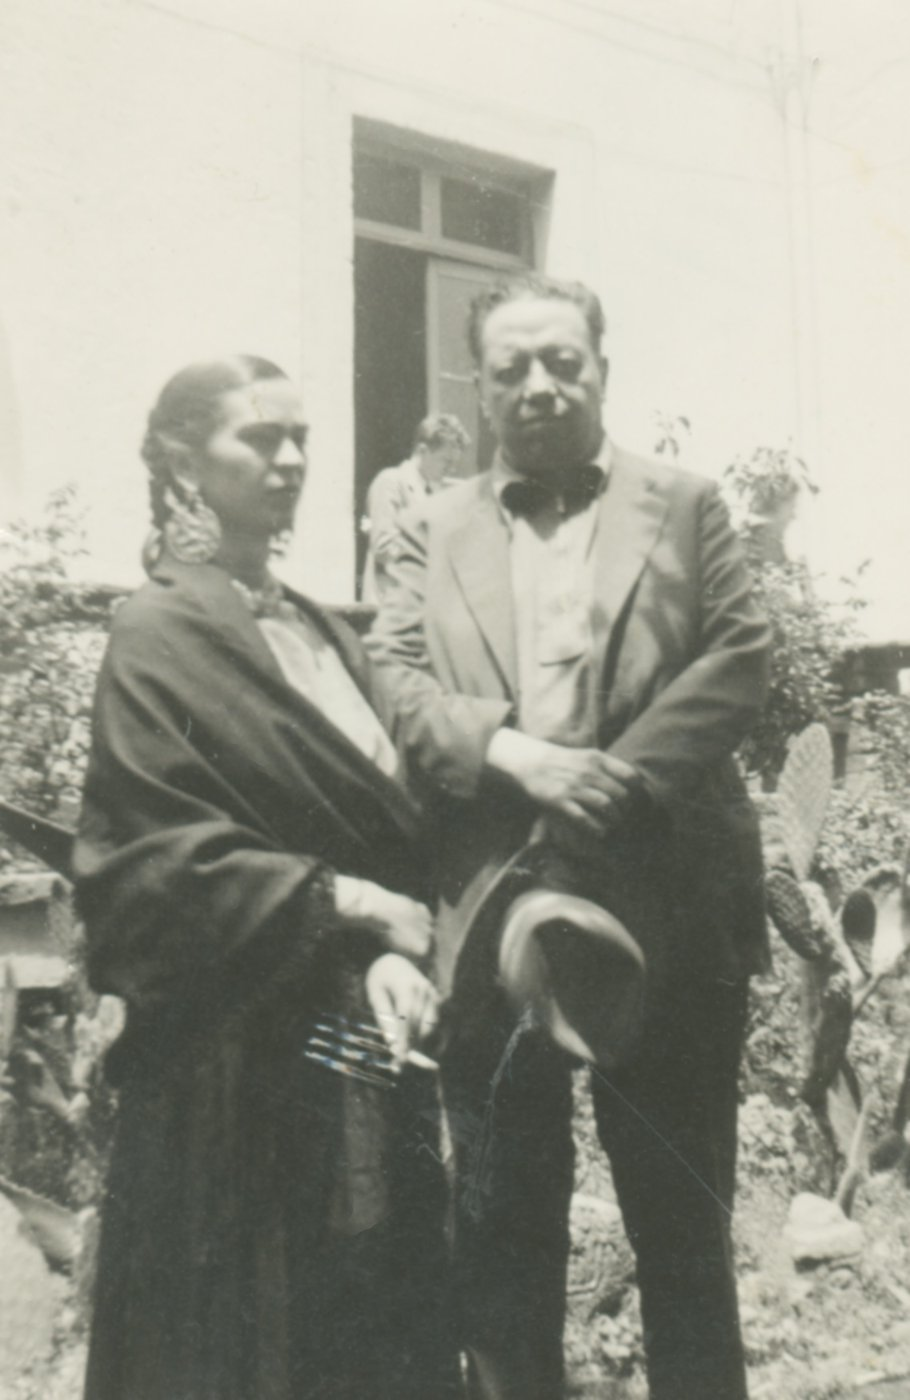 Guillermo Zamora, 'Frida and Diego, Coyoacán', 1937